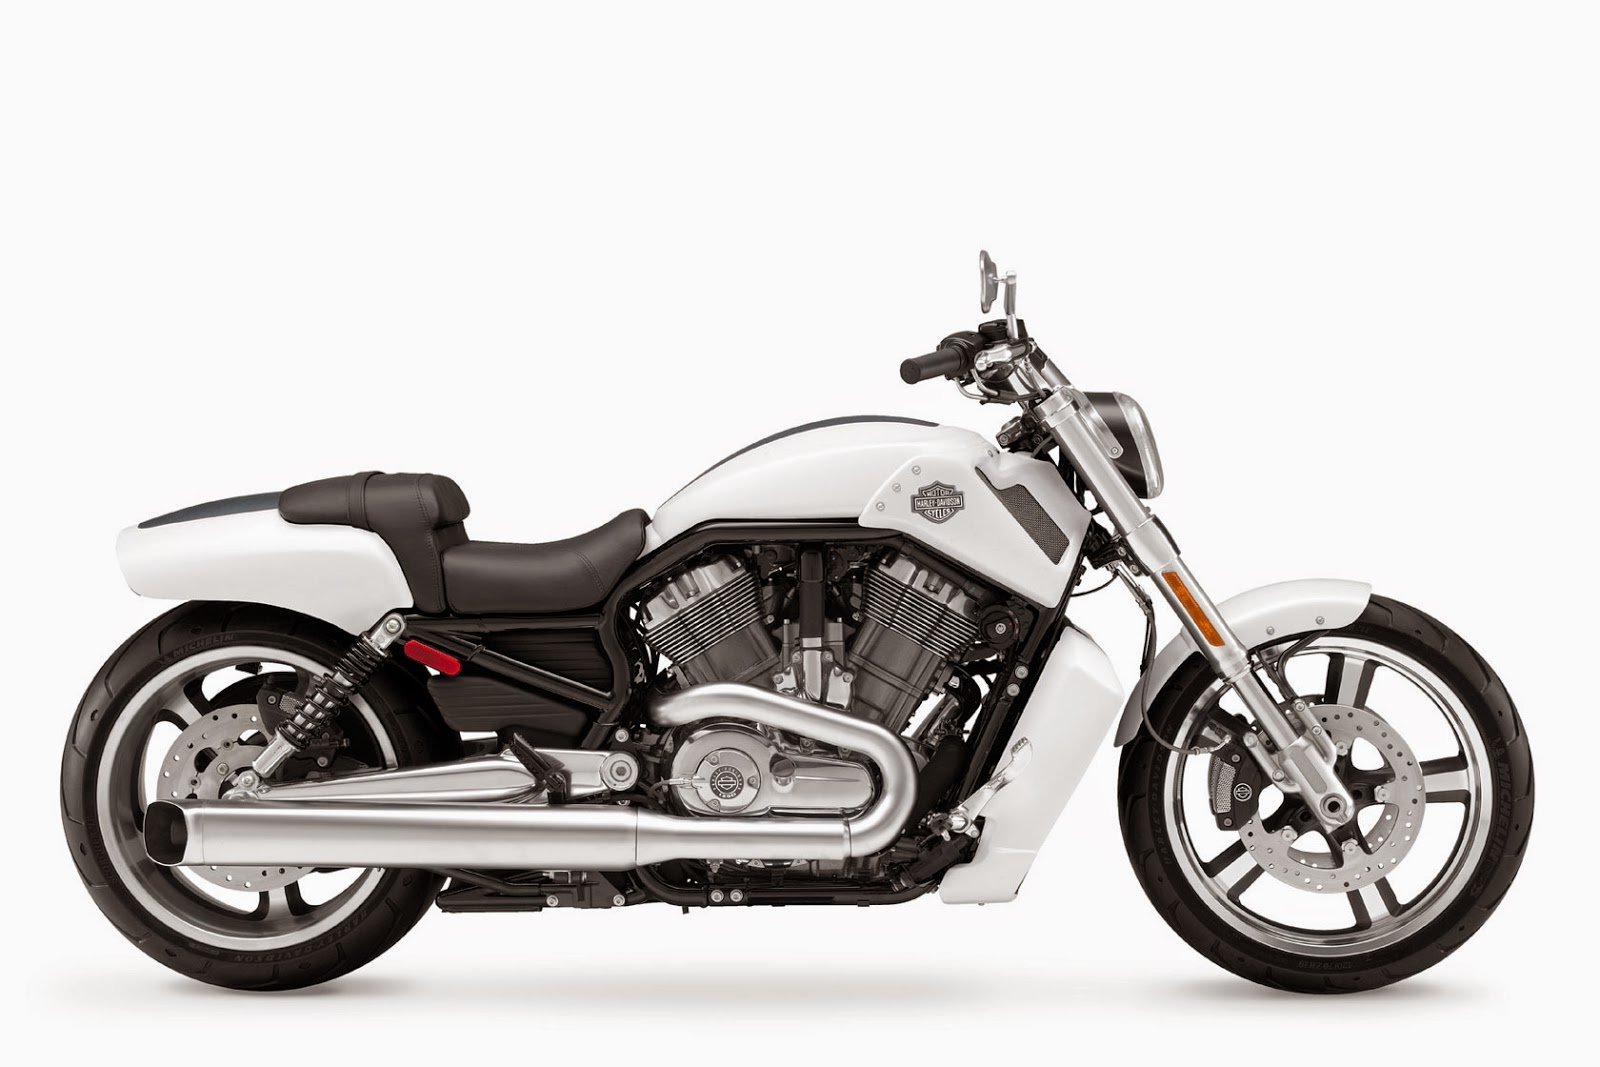 Harley-Davidson VRSC Workshop Service Repair Manual 2011 Download Content: Service  Repair Workshop Manual File type: PDFs zipped ( open maintoc.pdf to read ...